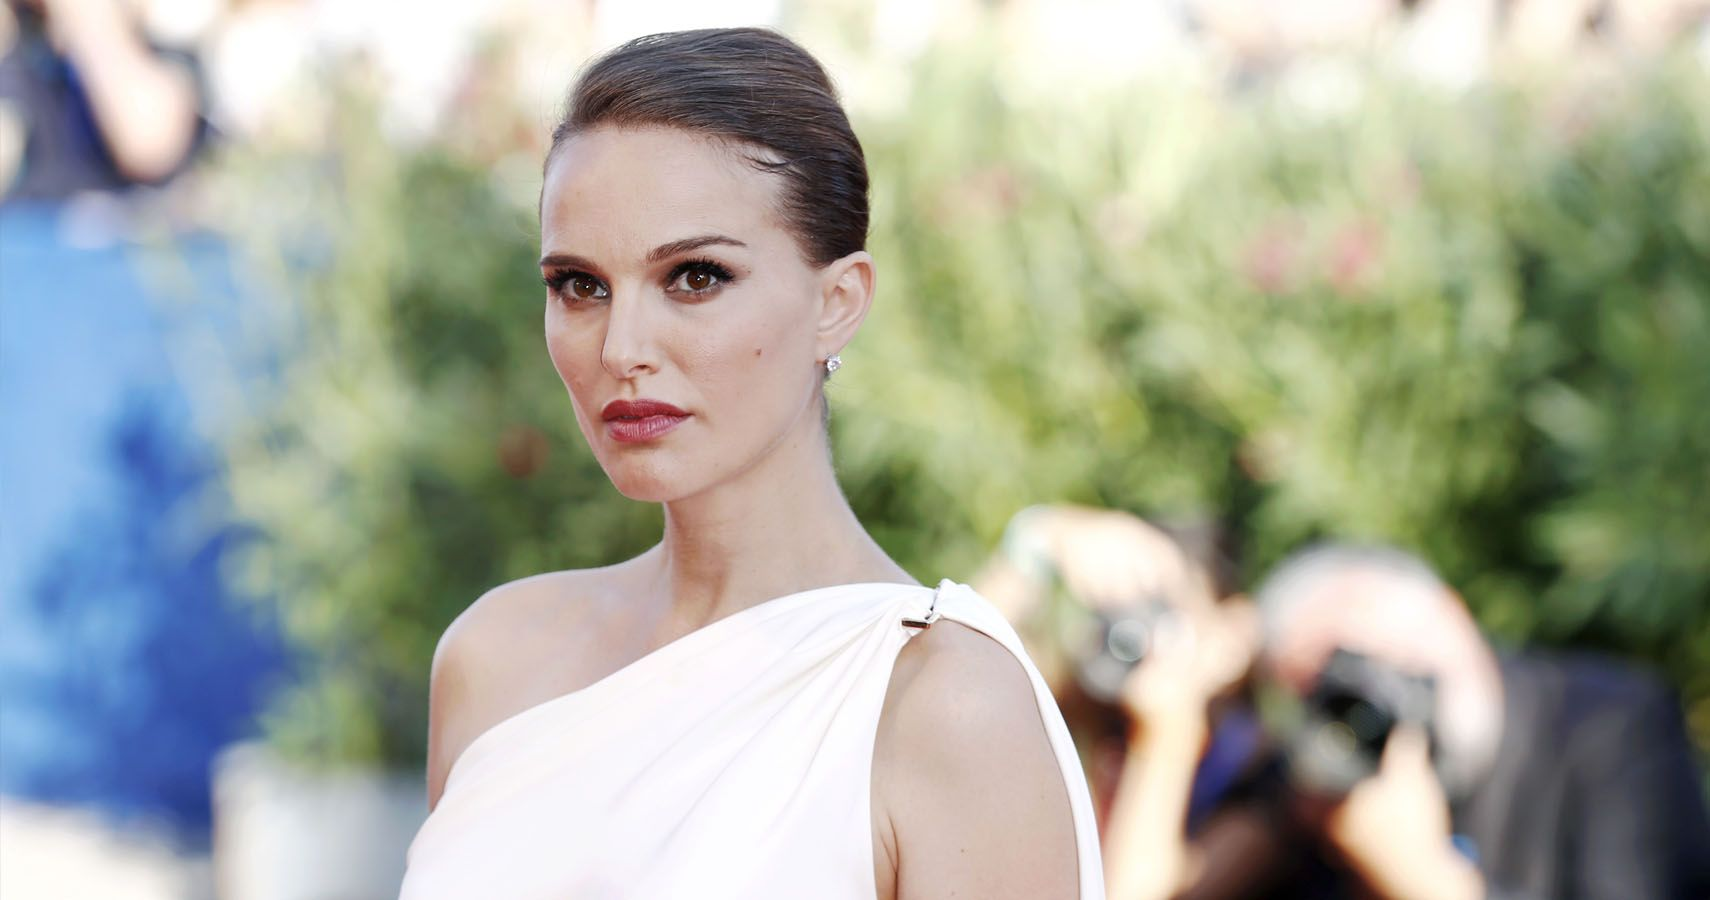 Acting Like A Director: Natalie Portman & Others Who Recently Turned The Camera